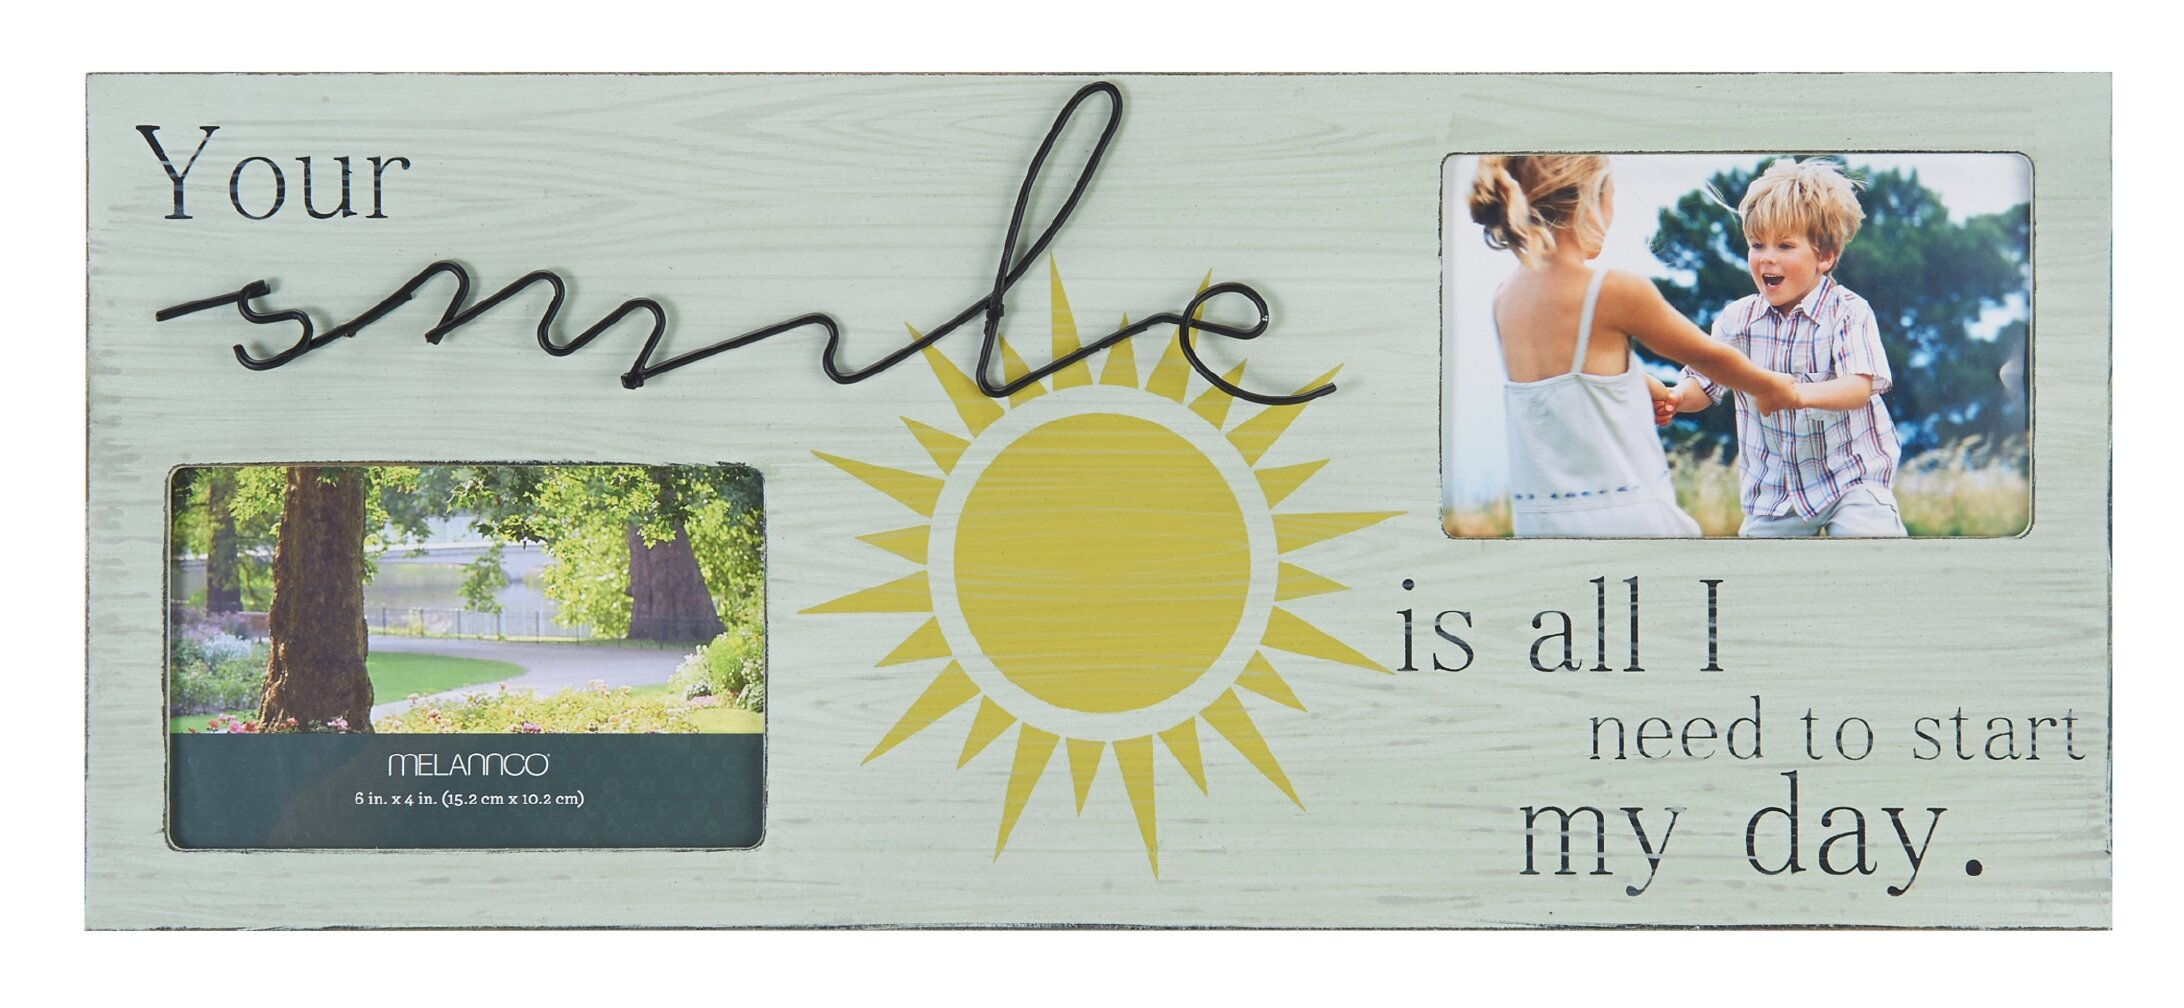 Melannco 2-Opening Smile Sentiment Collage Picture Frame | Wayfair